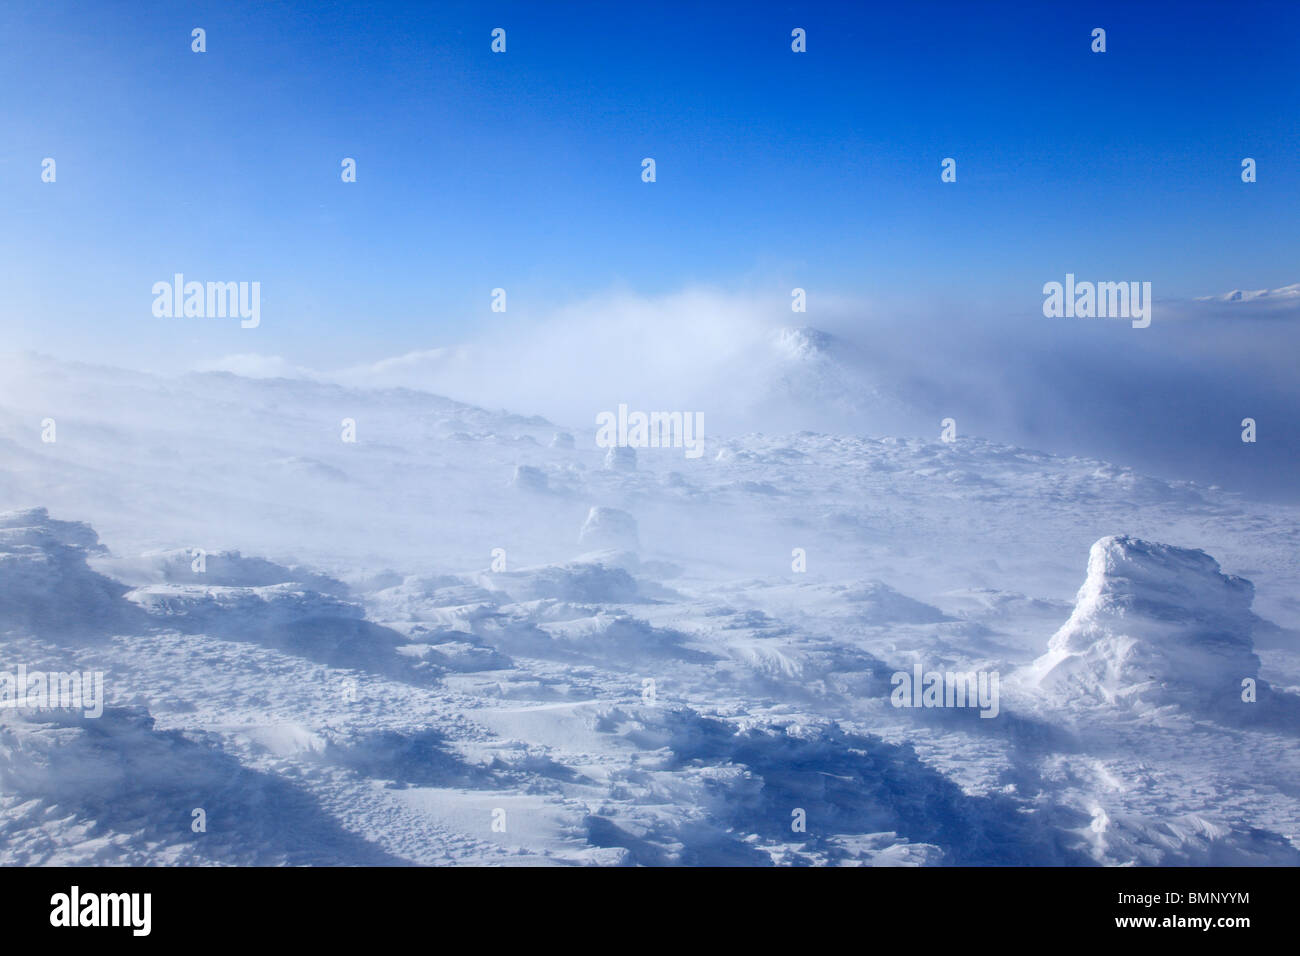 Extreme weather conditions along Crawford Path in the Presidential Range in the White Mountains, New Hampshire USA Stock Photo